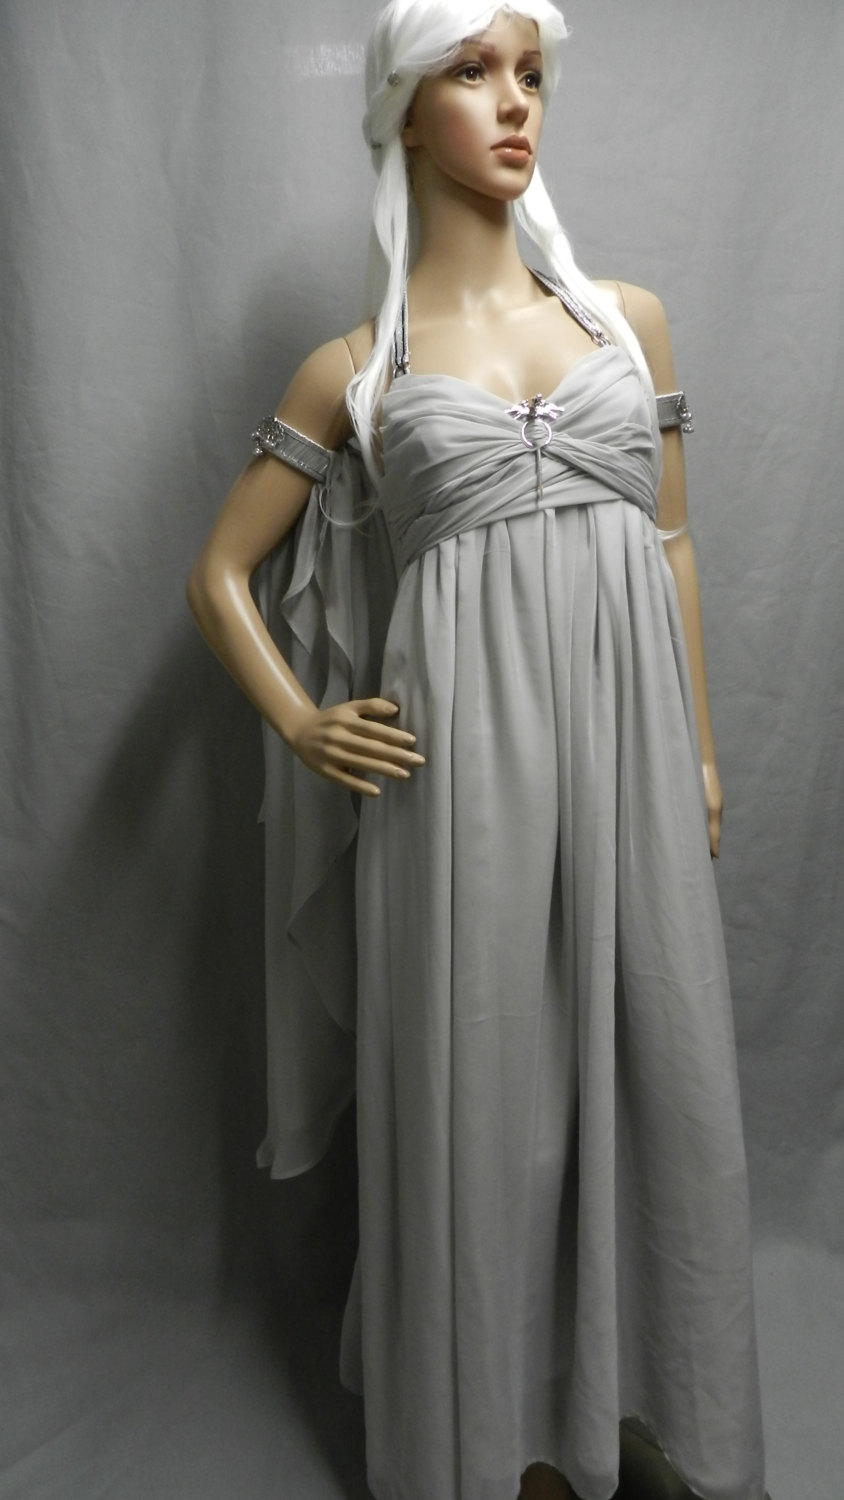 Game Of Thrones Khaleesi Daenerys Targaryen Wedding Dress